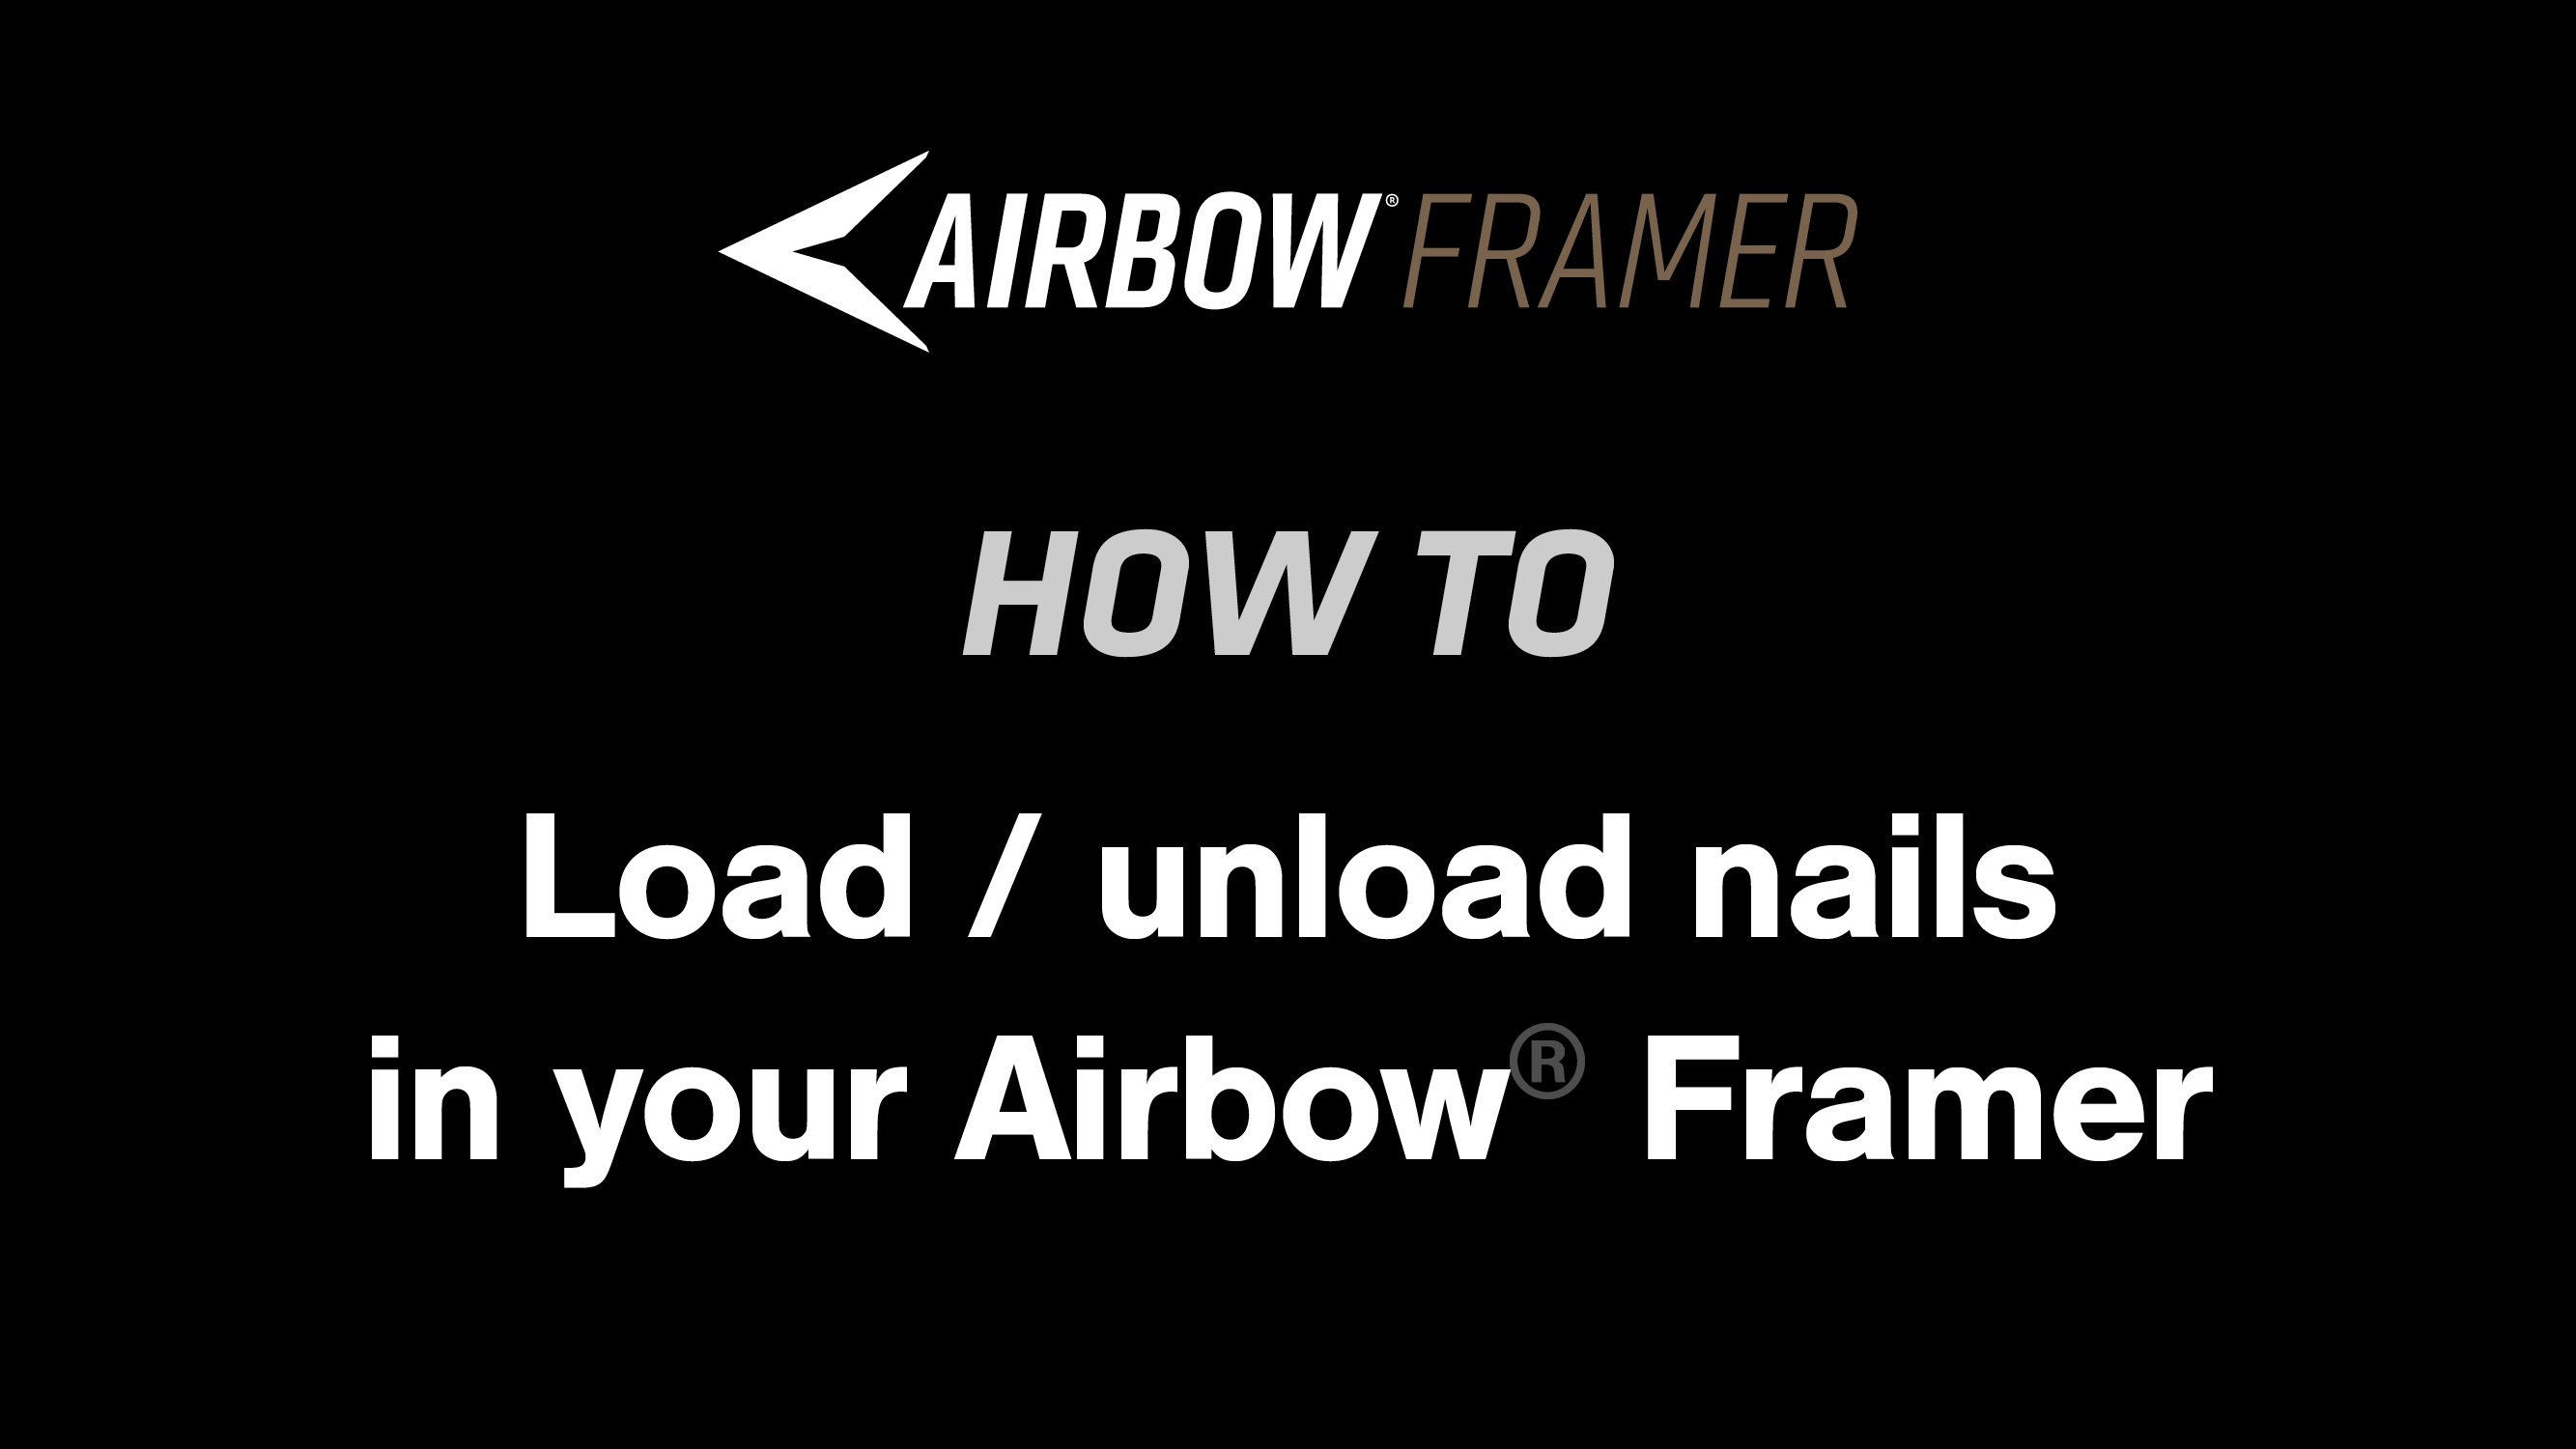 How to: Load and unload nails